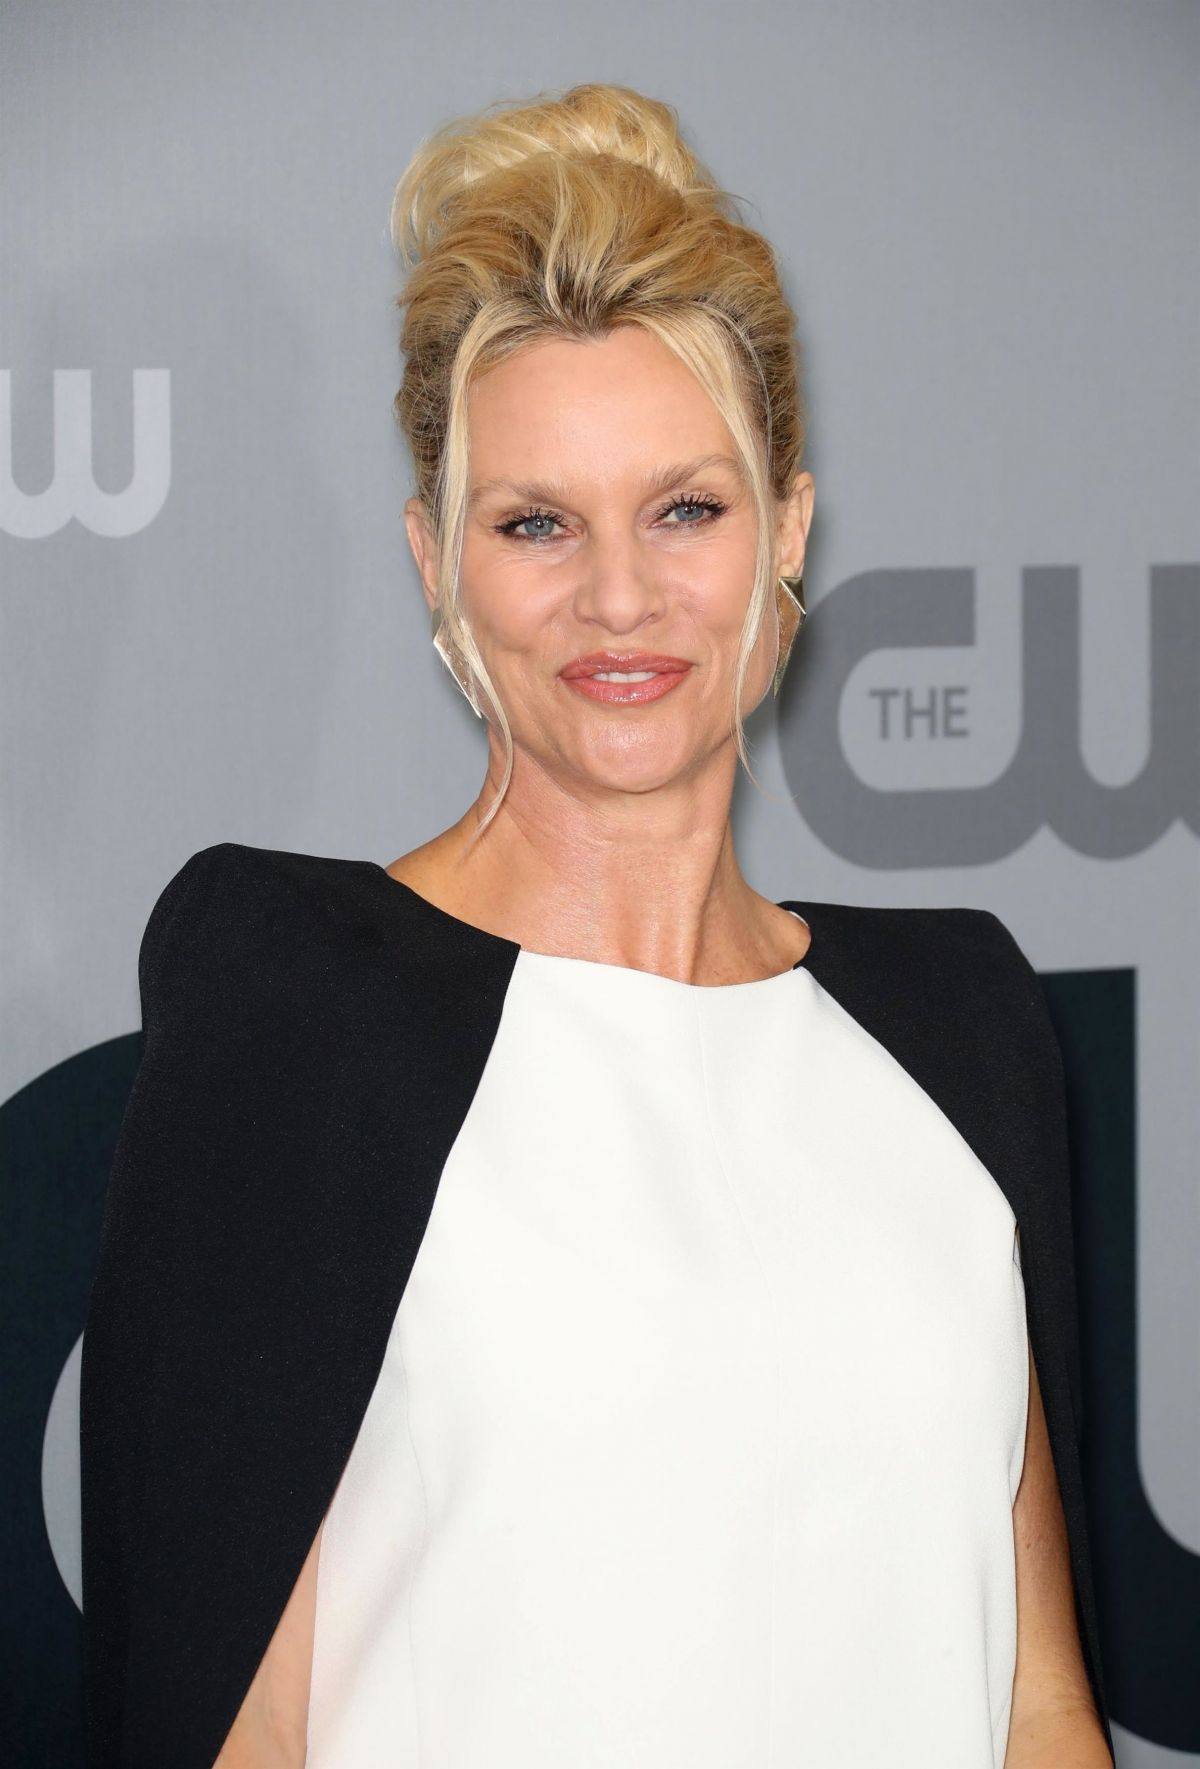 Nicollette Sheridan naked (99 photos), Tits, Is a cute, Boobs, panties 2017